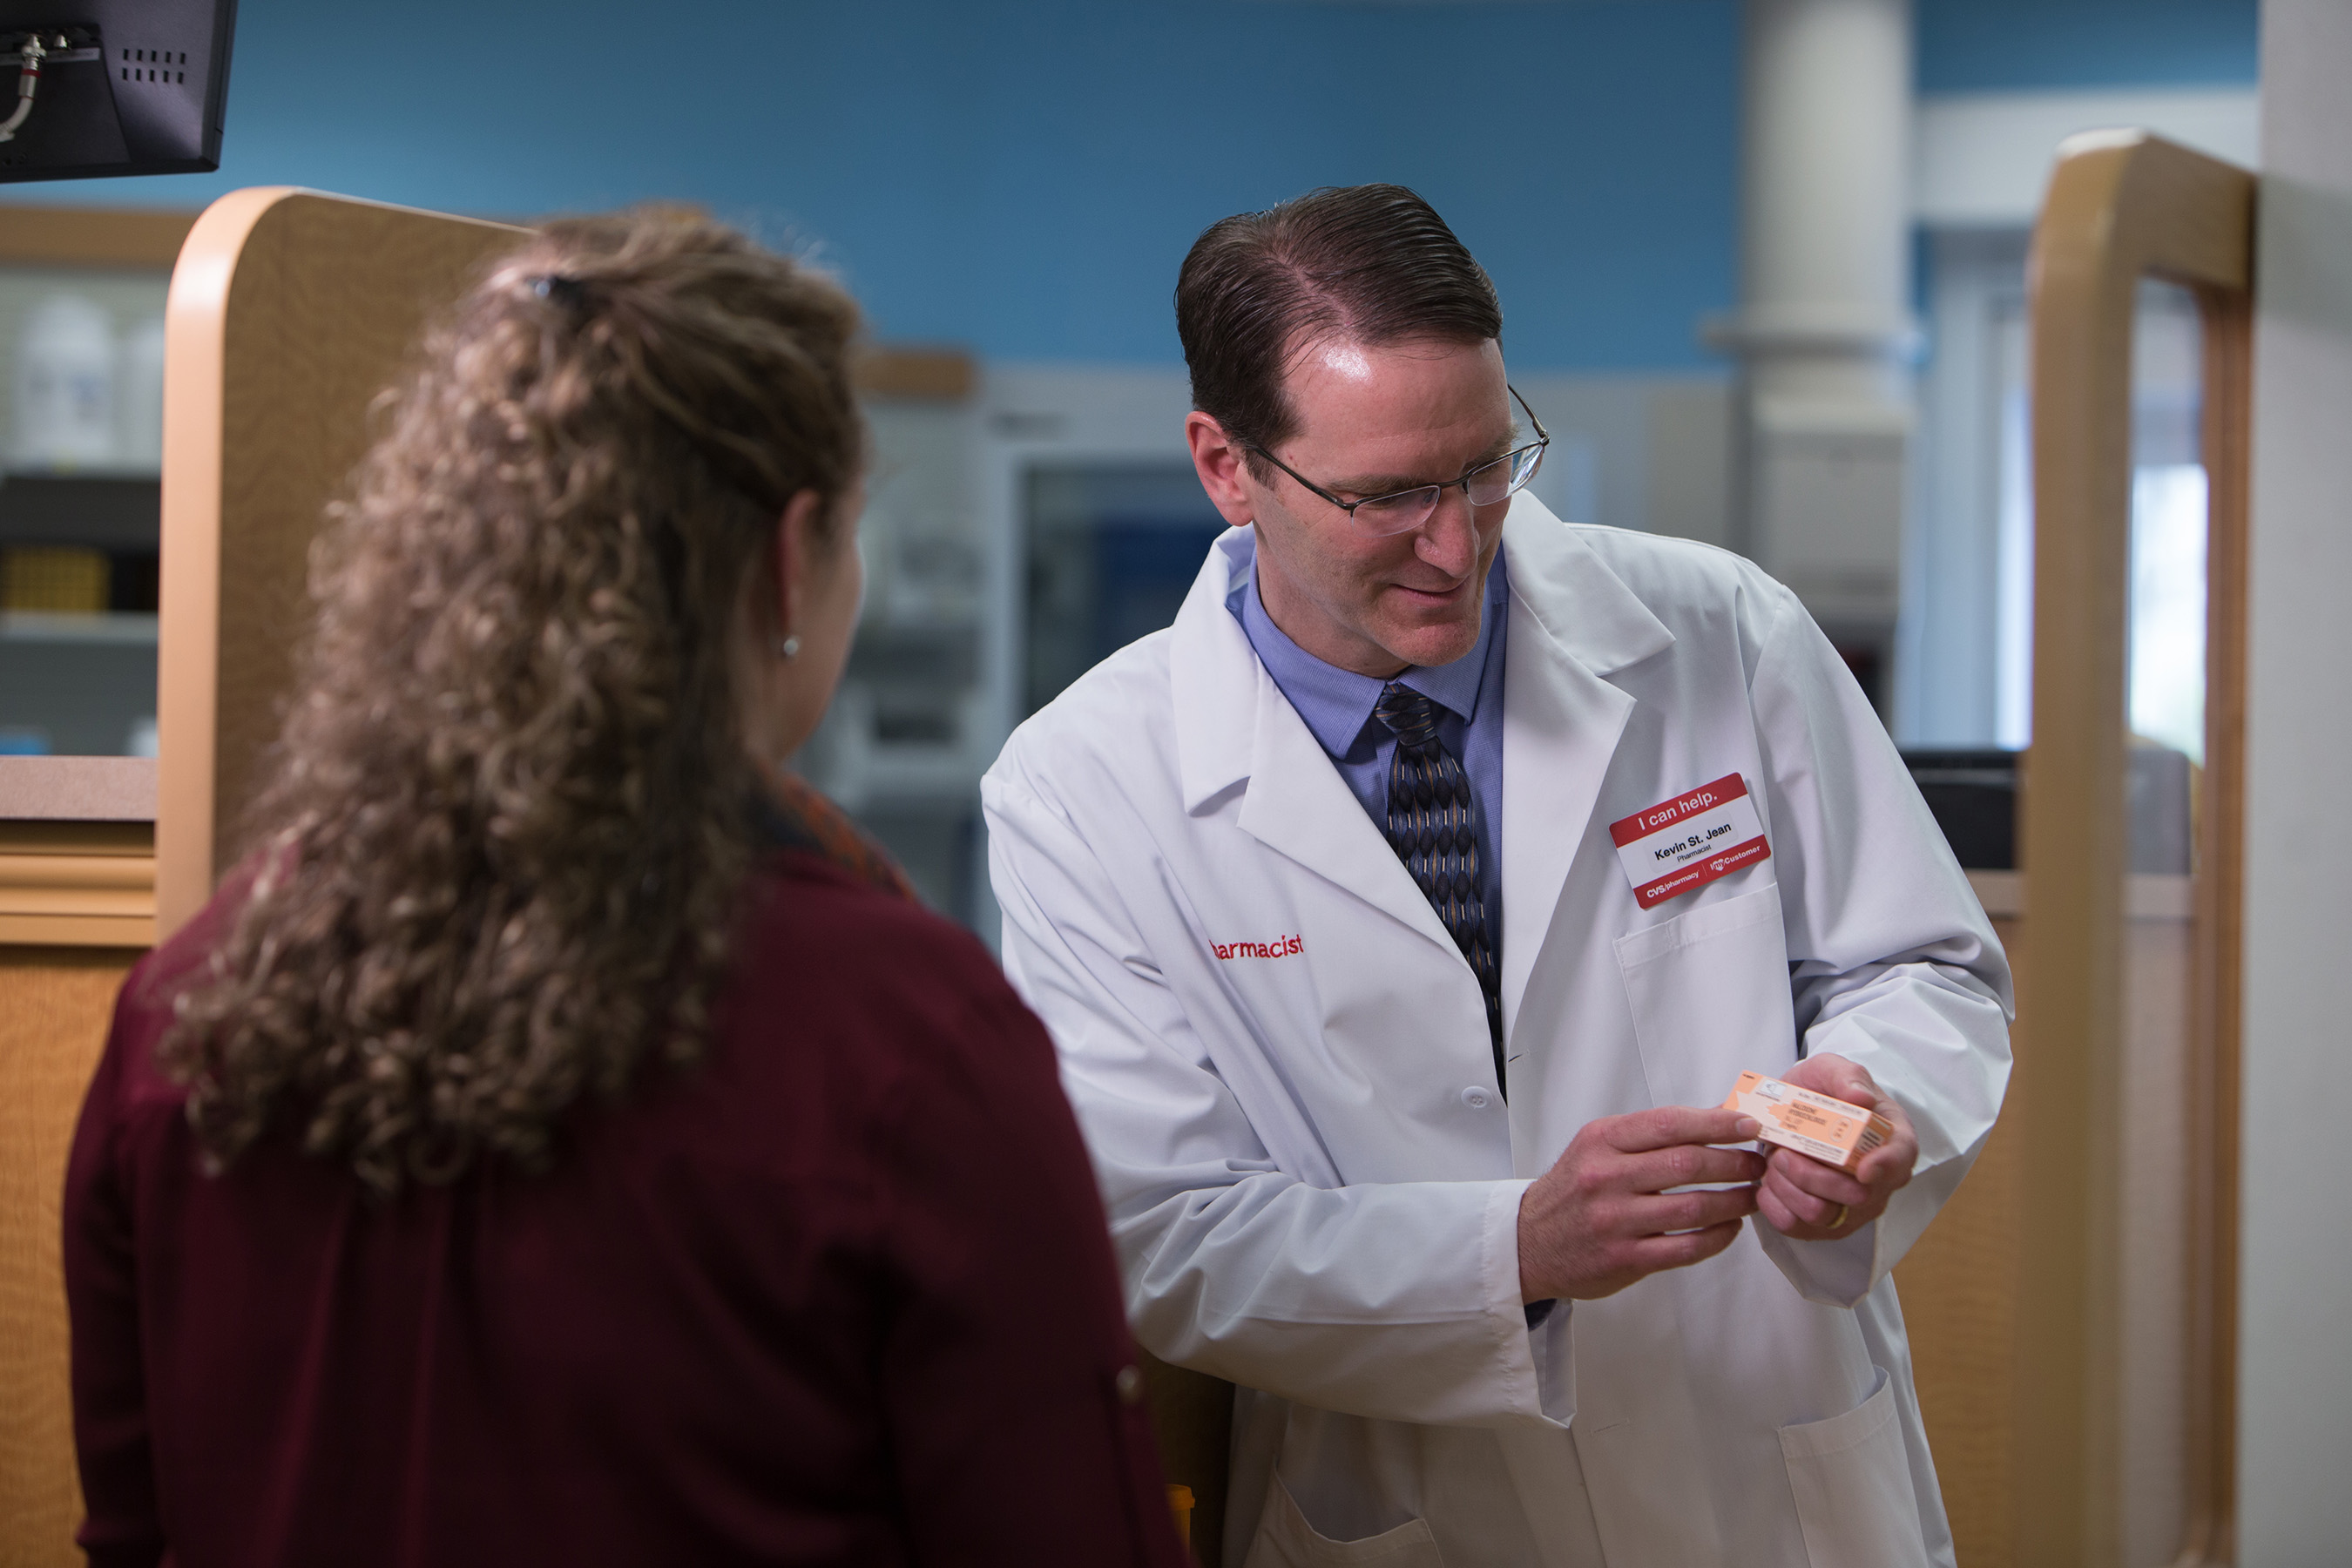 A CVS pharmacist provides information about how to identify an opioid overdose and properly administer naloxone when dispensing the medication